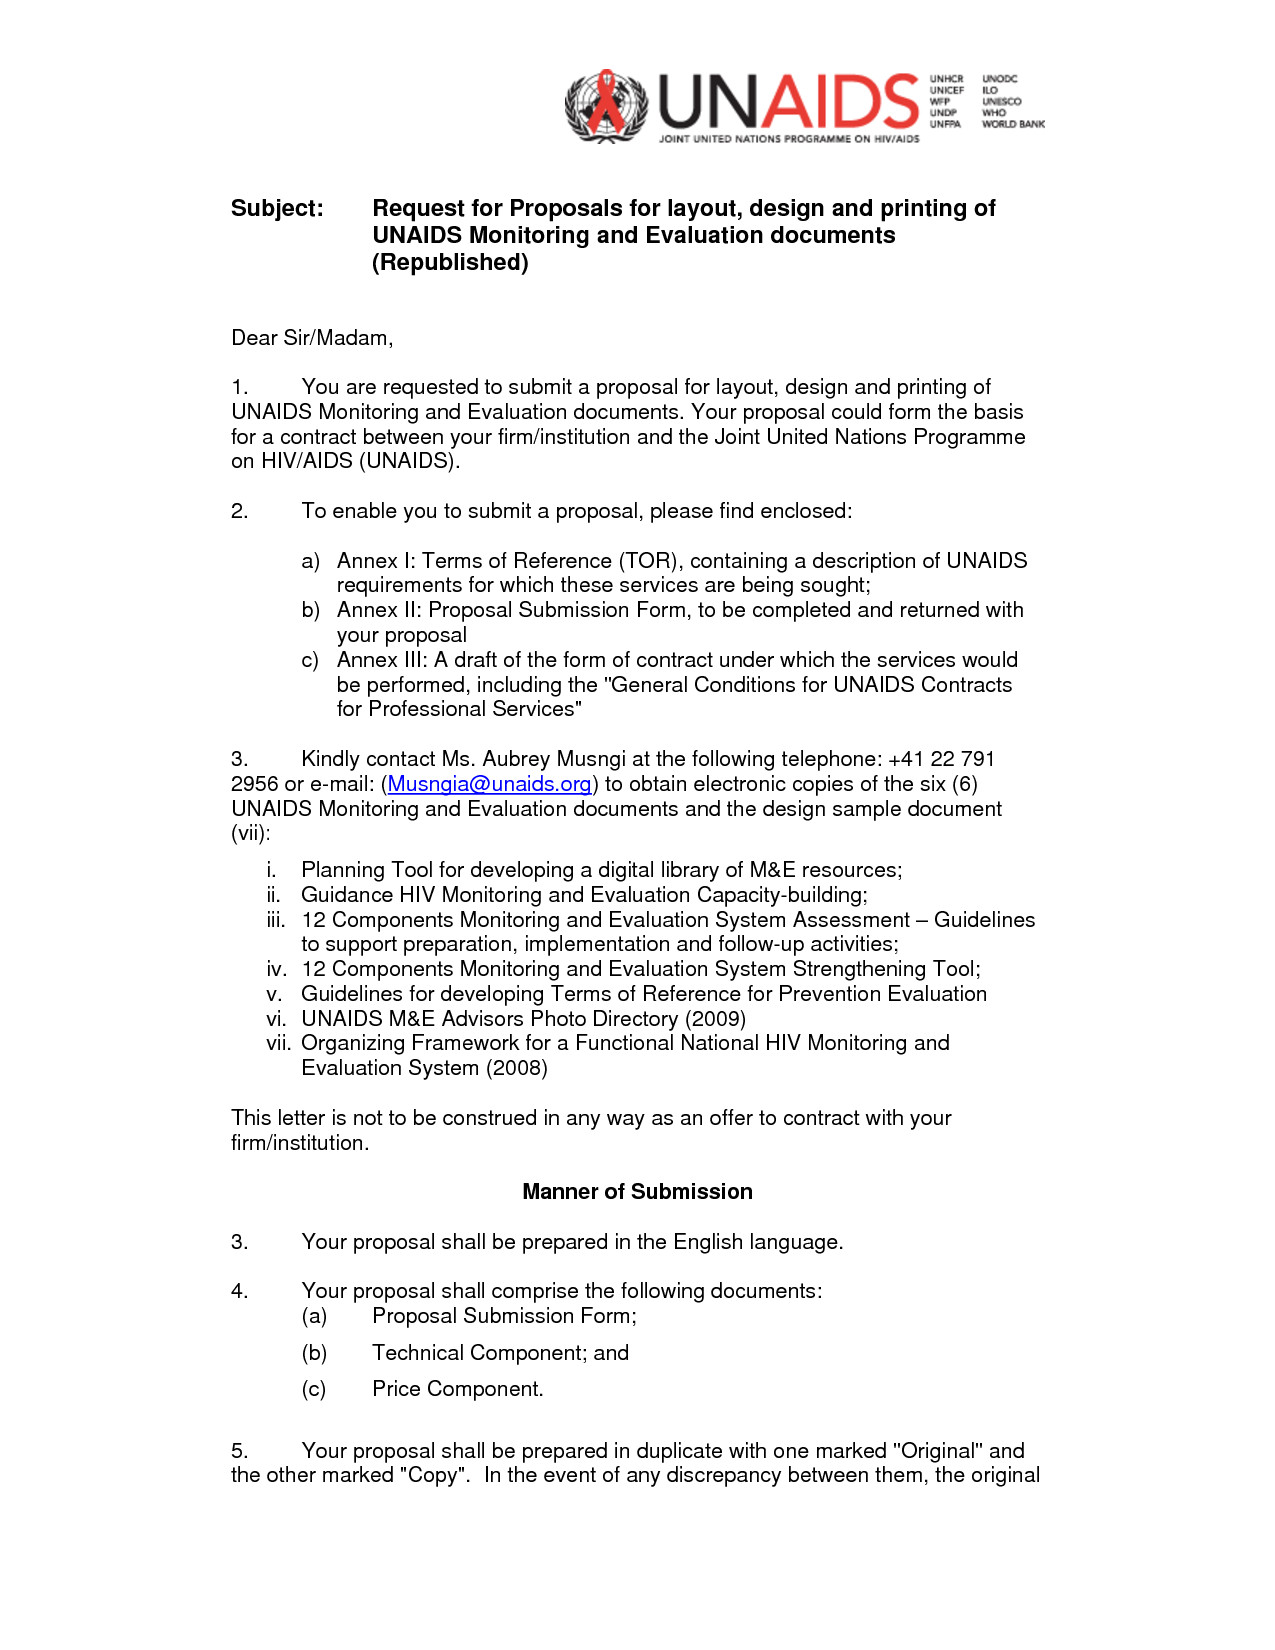 Sample Rfp Response Letter Rfp Cover Letter